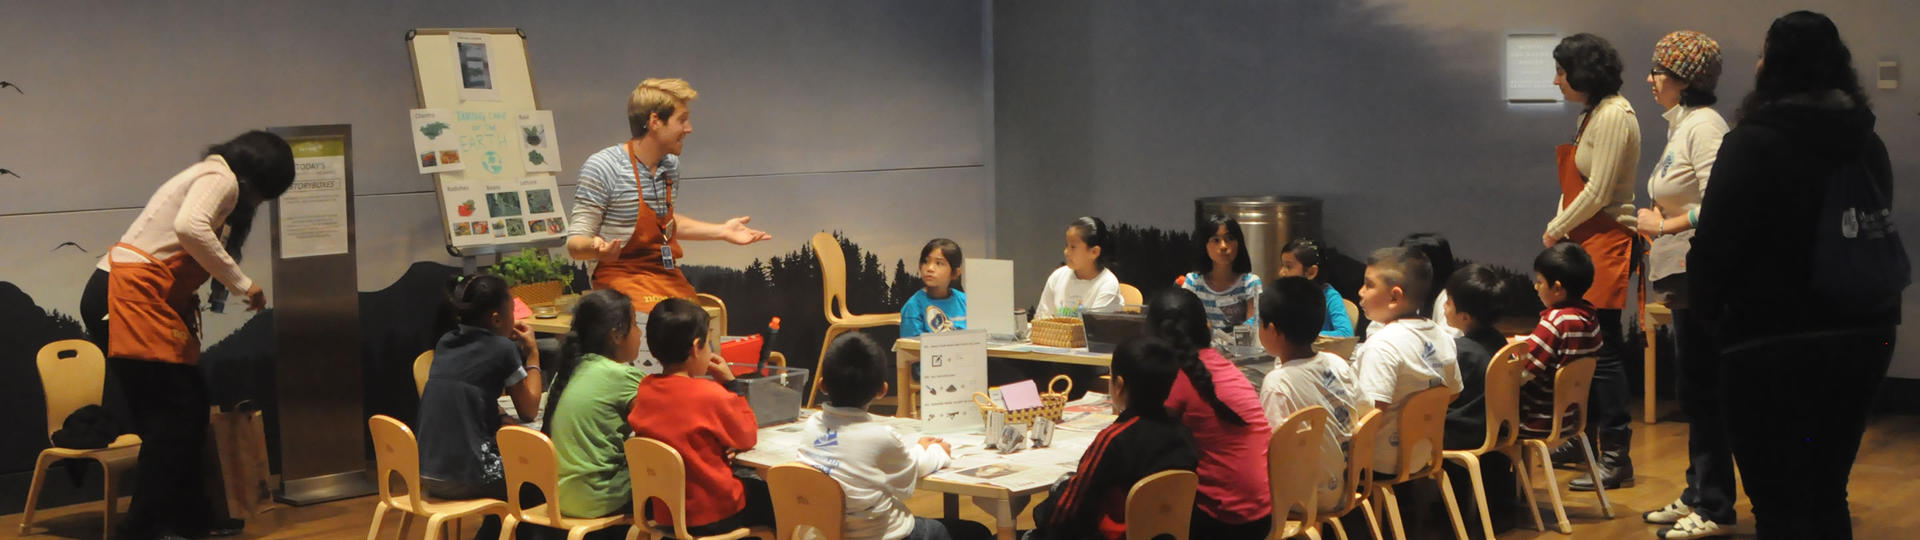 Instructor talking to young children seated around a u-shaped table